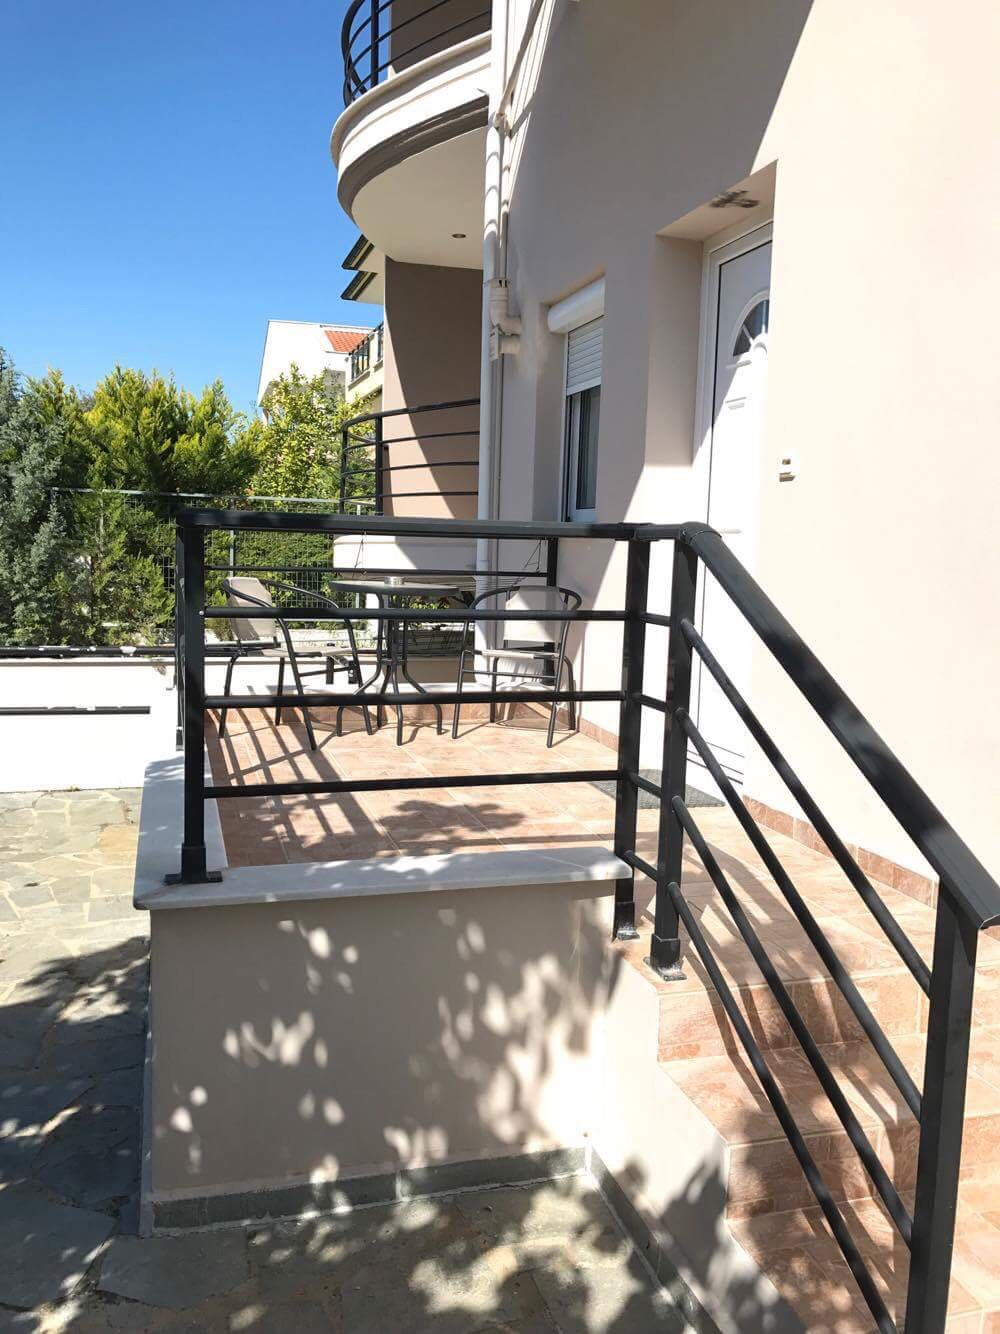 chris apartments limenas thassos 4 bed studio attic  (1)